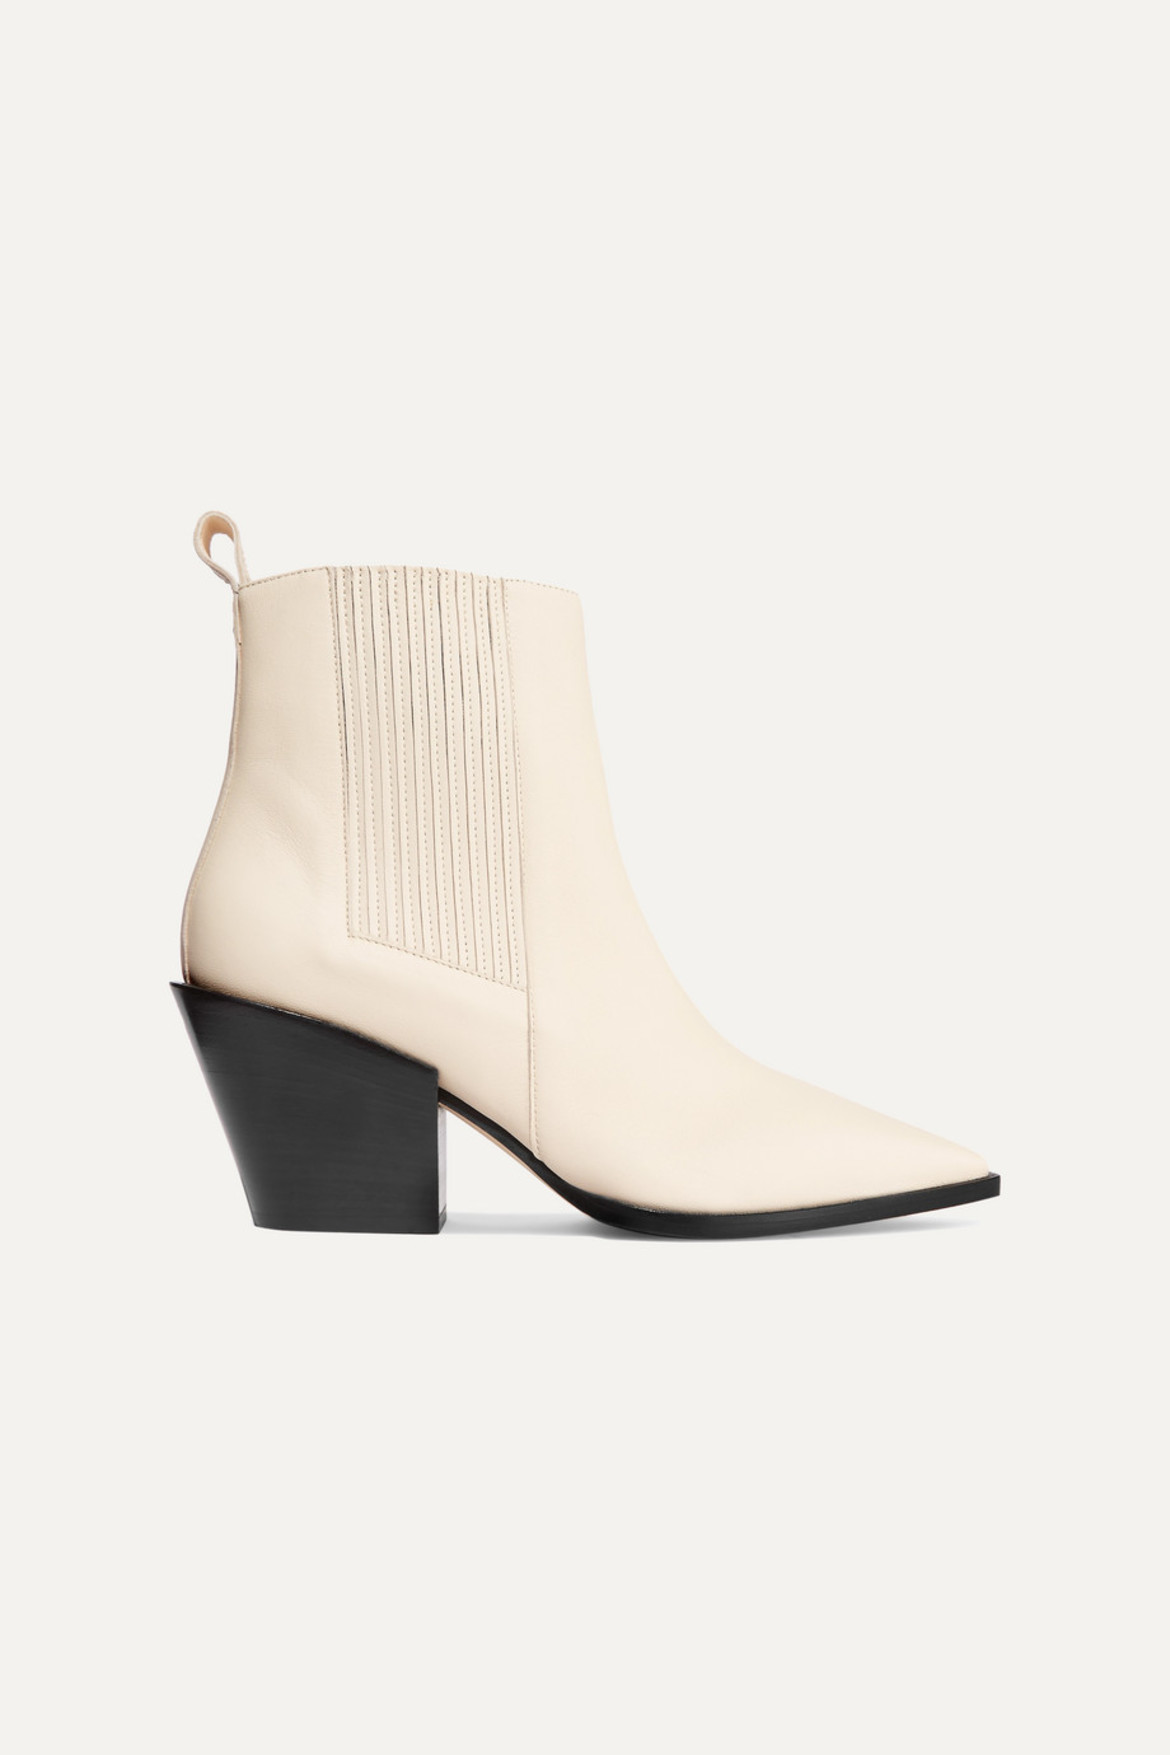 AEYDĒ Kate leather ankle boots HK$2,480 from Net-A-Porter